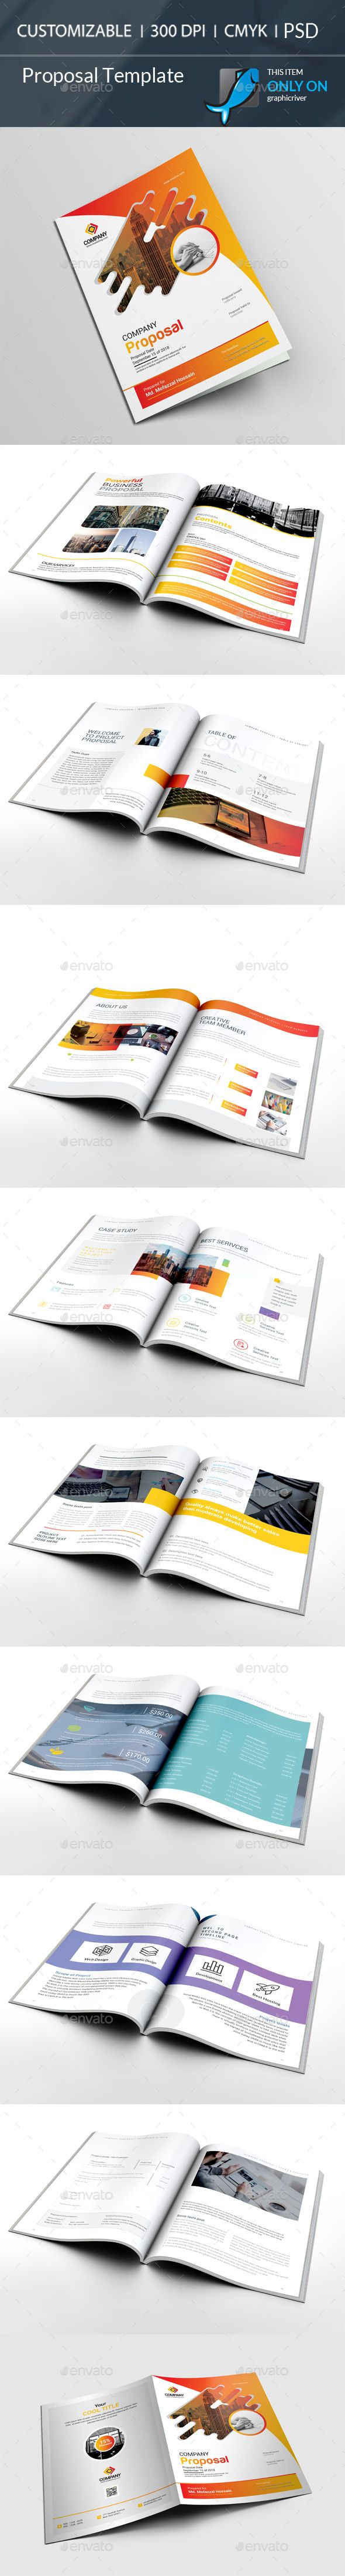 #Proposal Template - #Stationery Print Templates